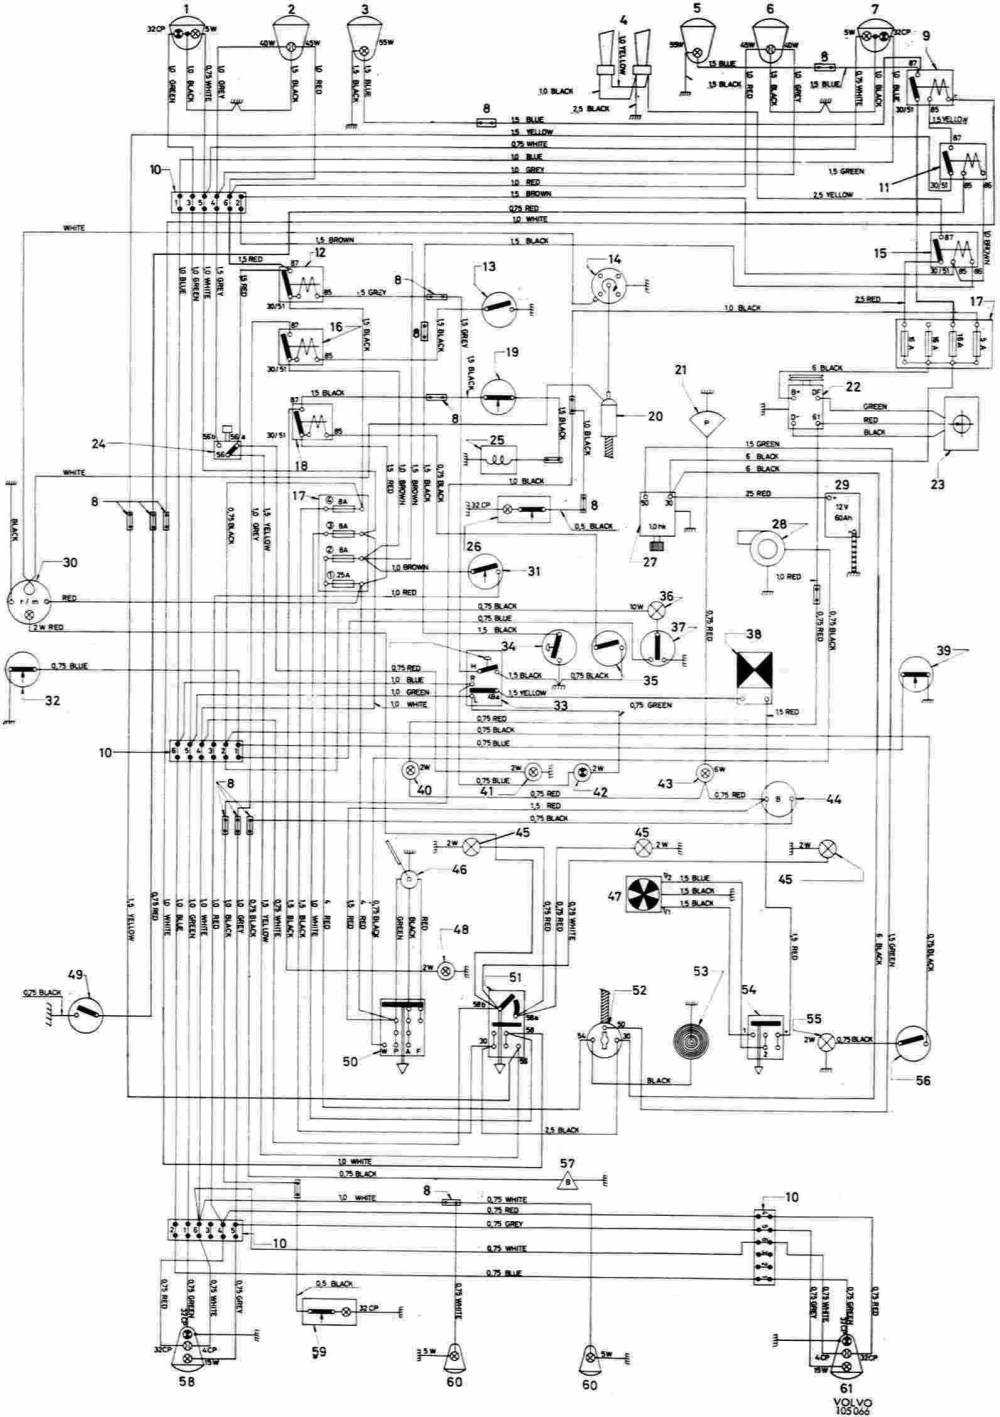 medium resolution of 2012 volvo s80 wiring diagram free download wiring diagram schematic volvo vn wiring diagram 2001 volvo wiring diagram